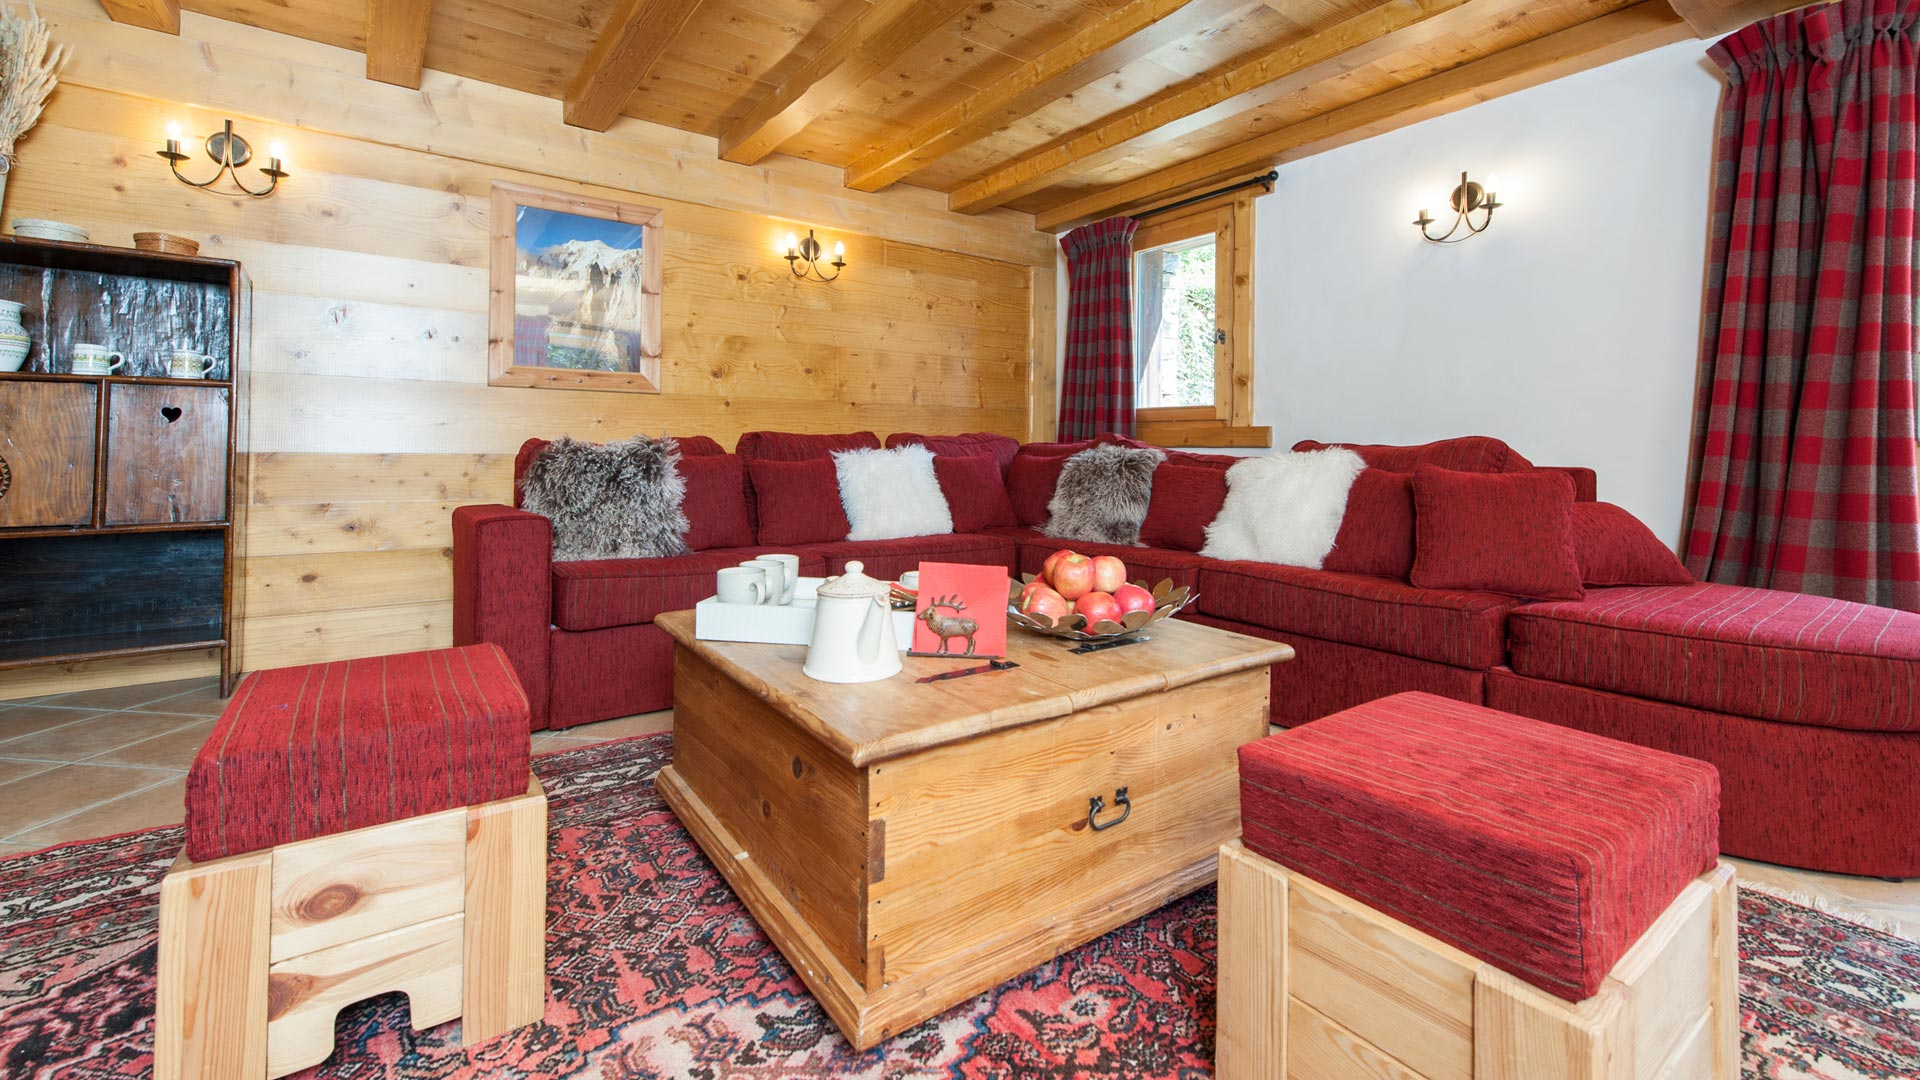 Living Area in Sainte Foy Apt. in Ste Foy